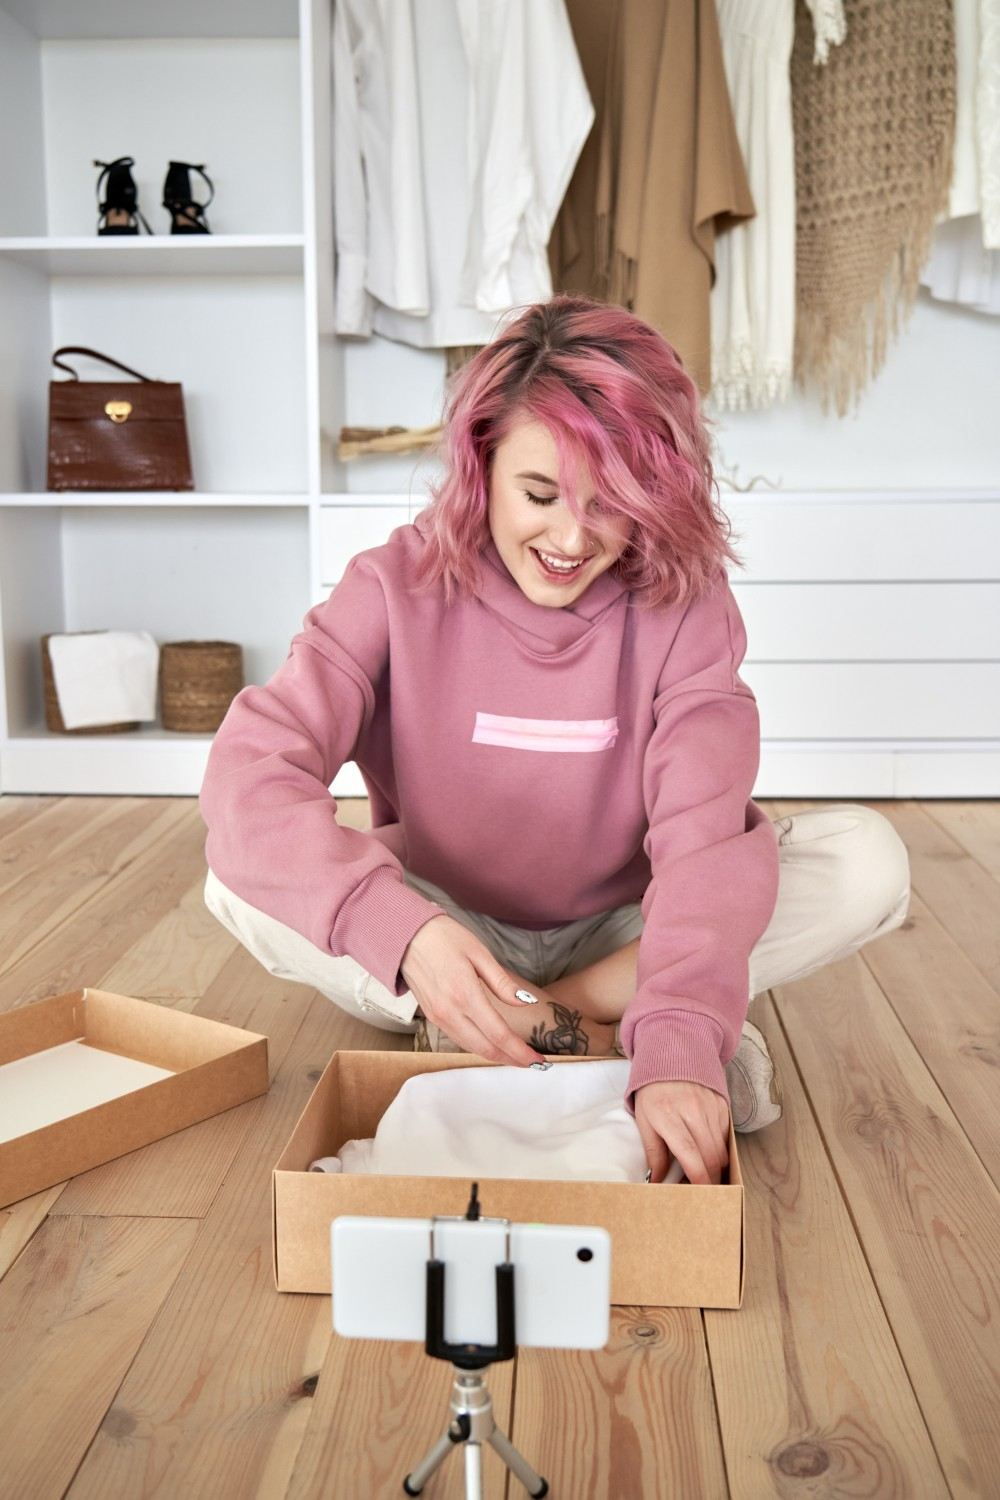 A CGS report finds that Gen Z has the power to push retail trends, and they're advocating for more sustainable options like fashion resale.